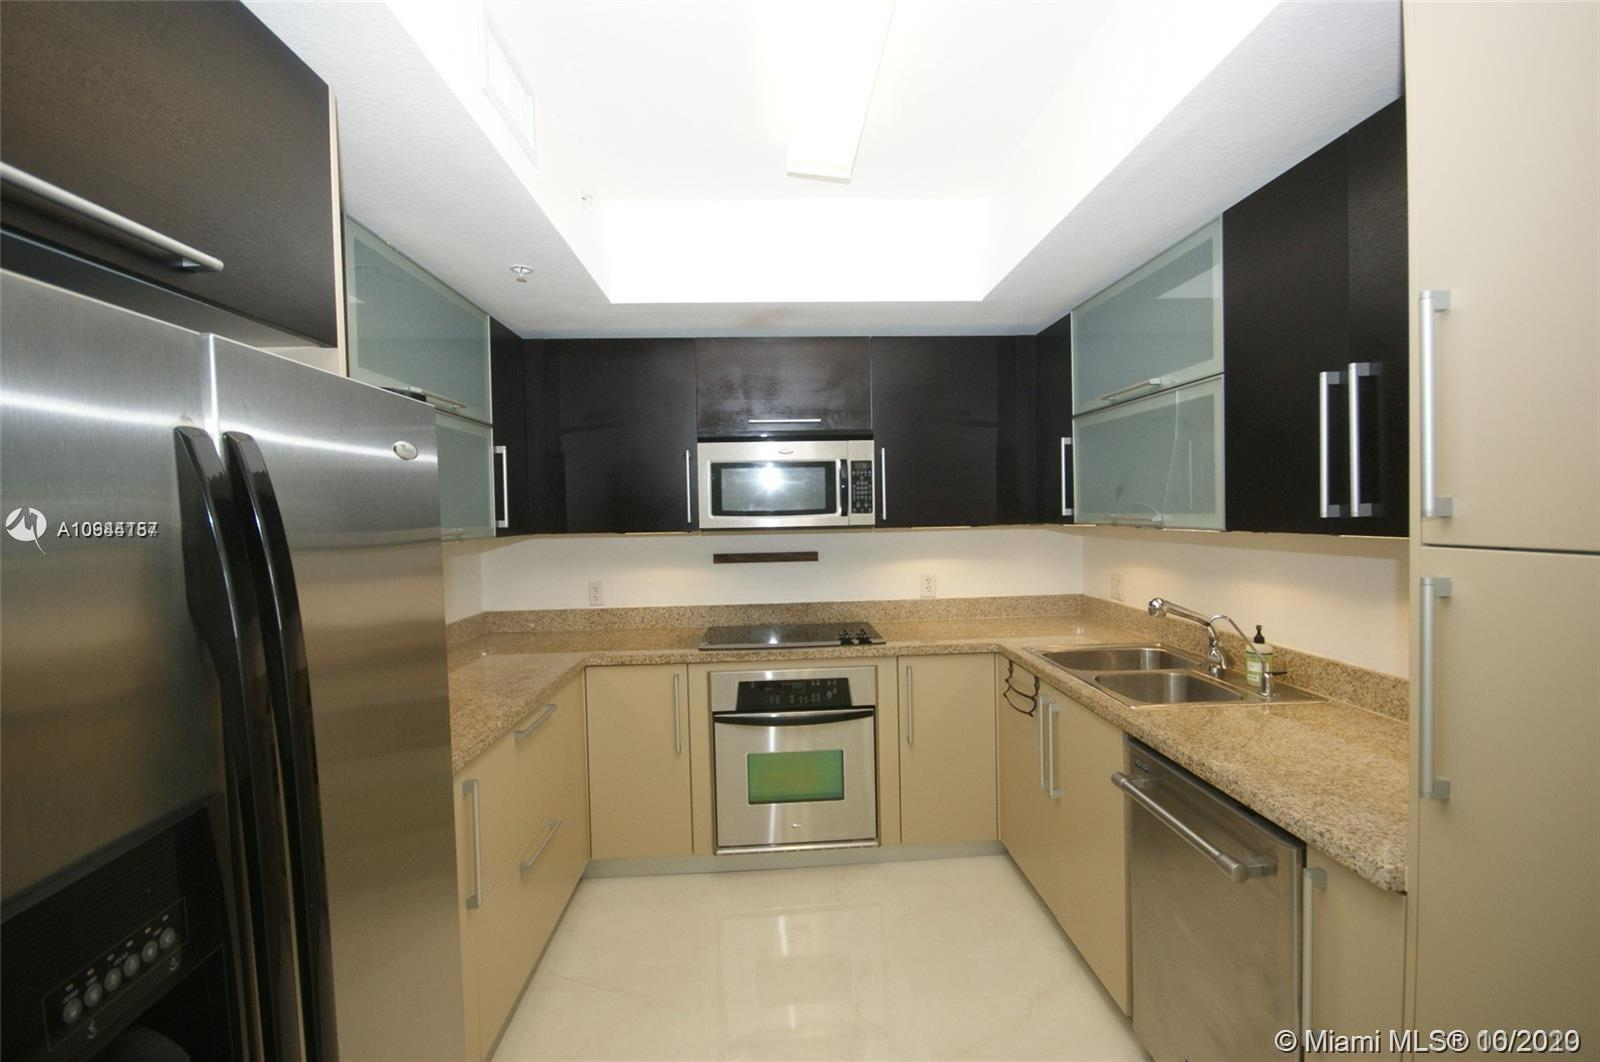 Amazing price on a 2/2 Biscayne Bay view updated condo with Balcony. Porcelain Floors, Italian Kitch